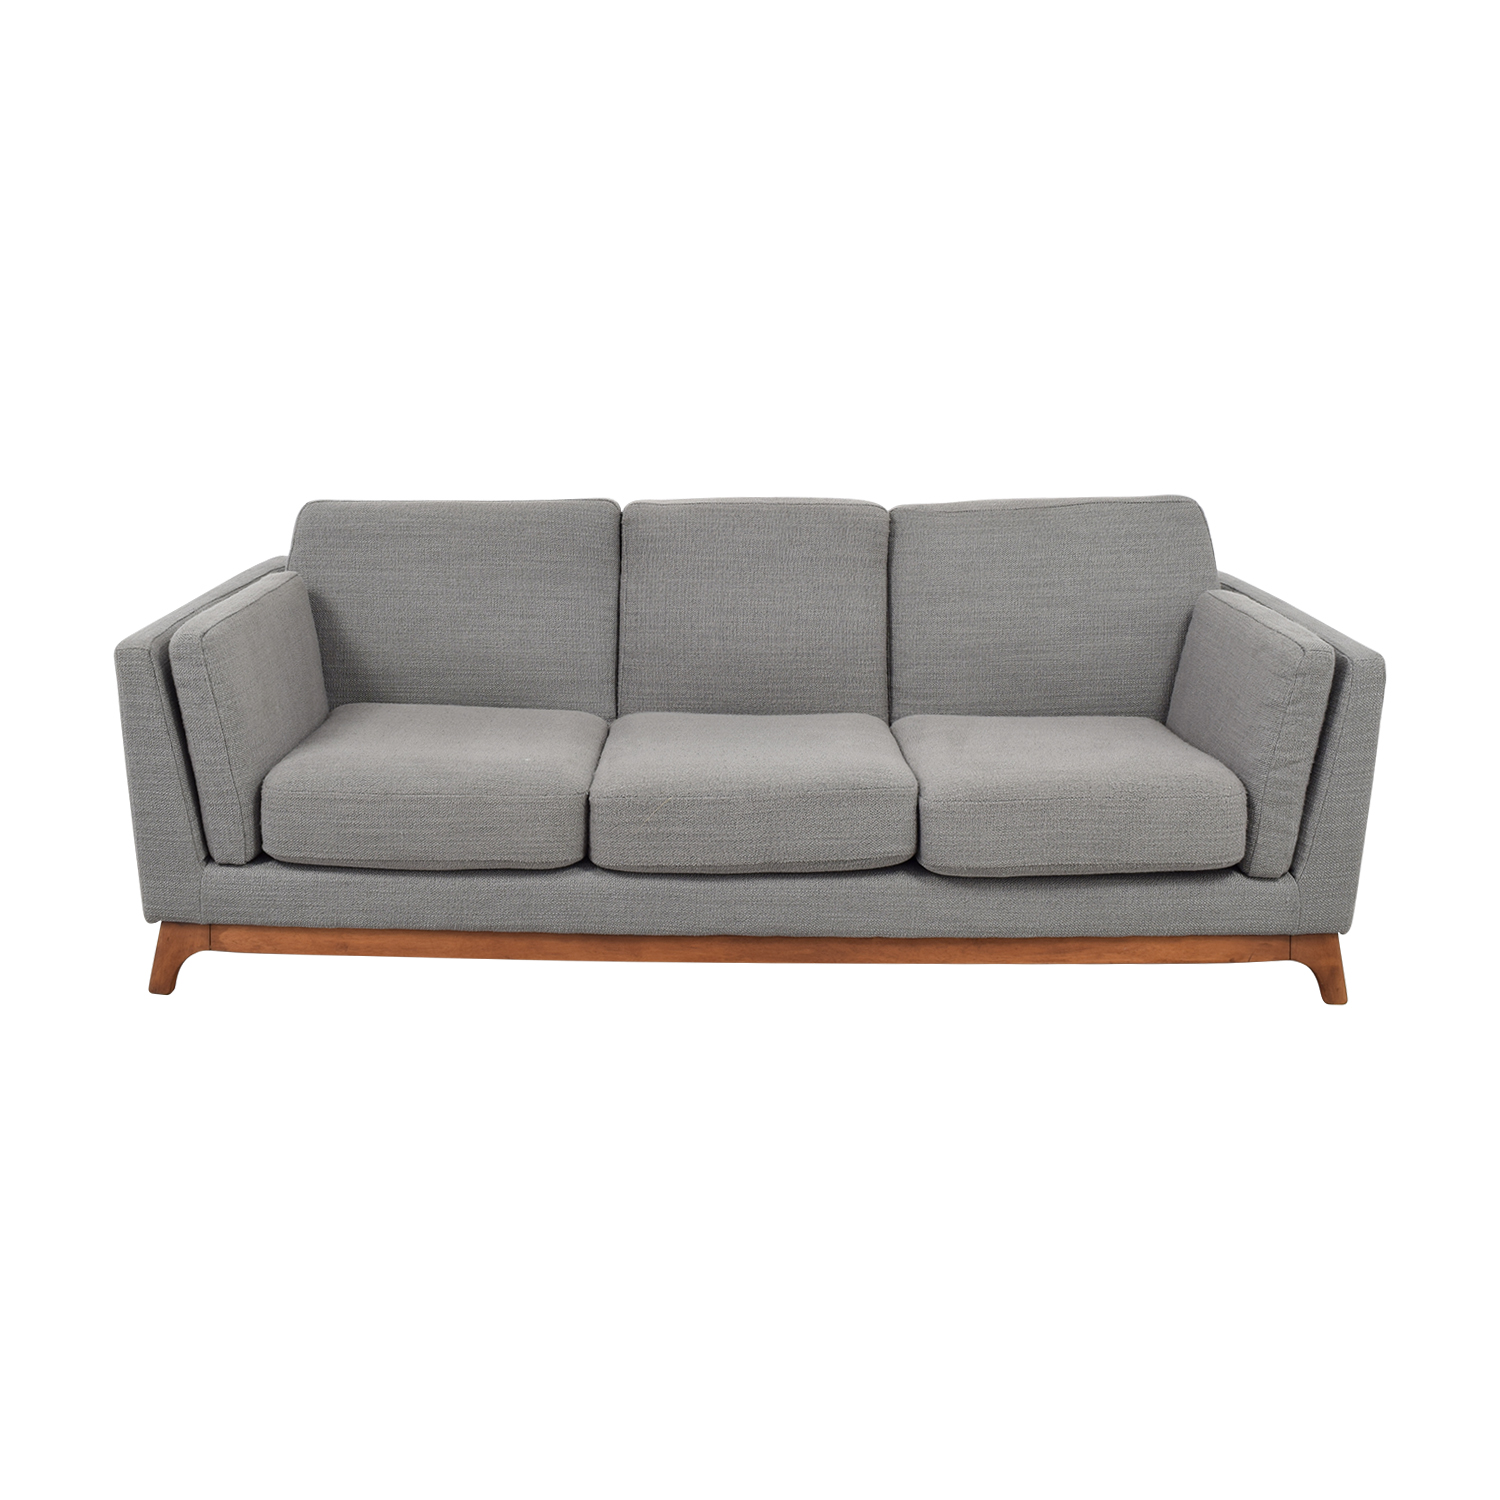 Article Article Ceni Grey Three-Cushion Sofa for sale